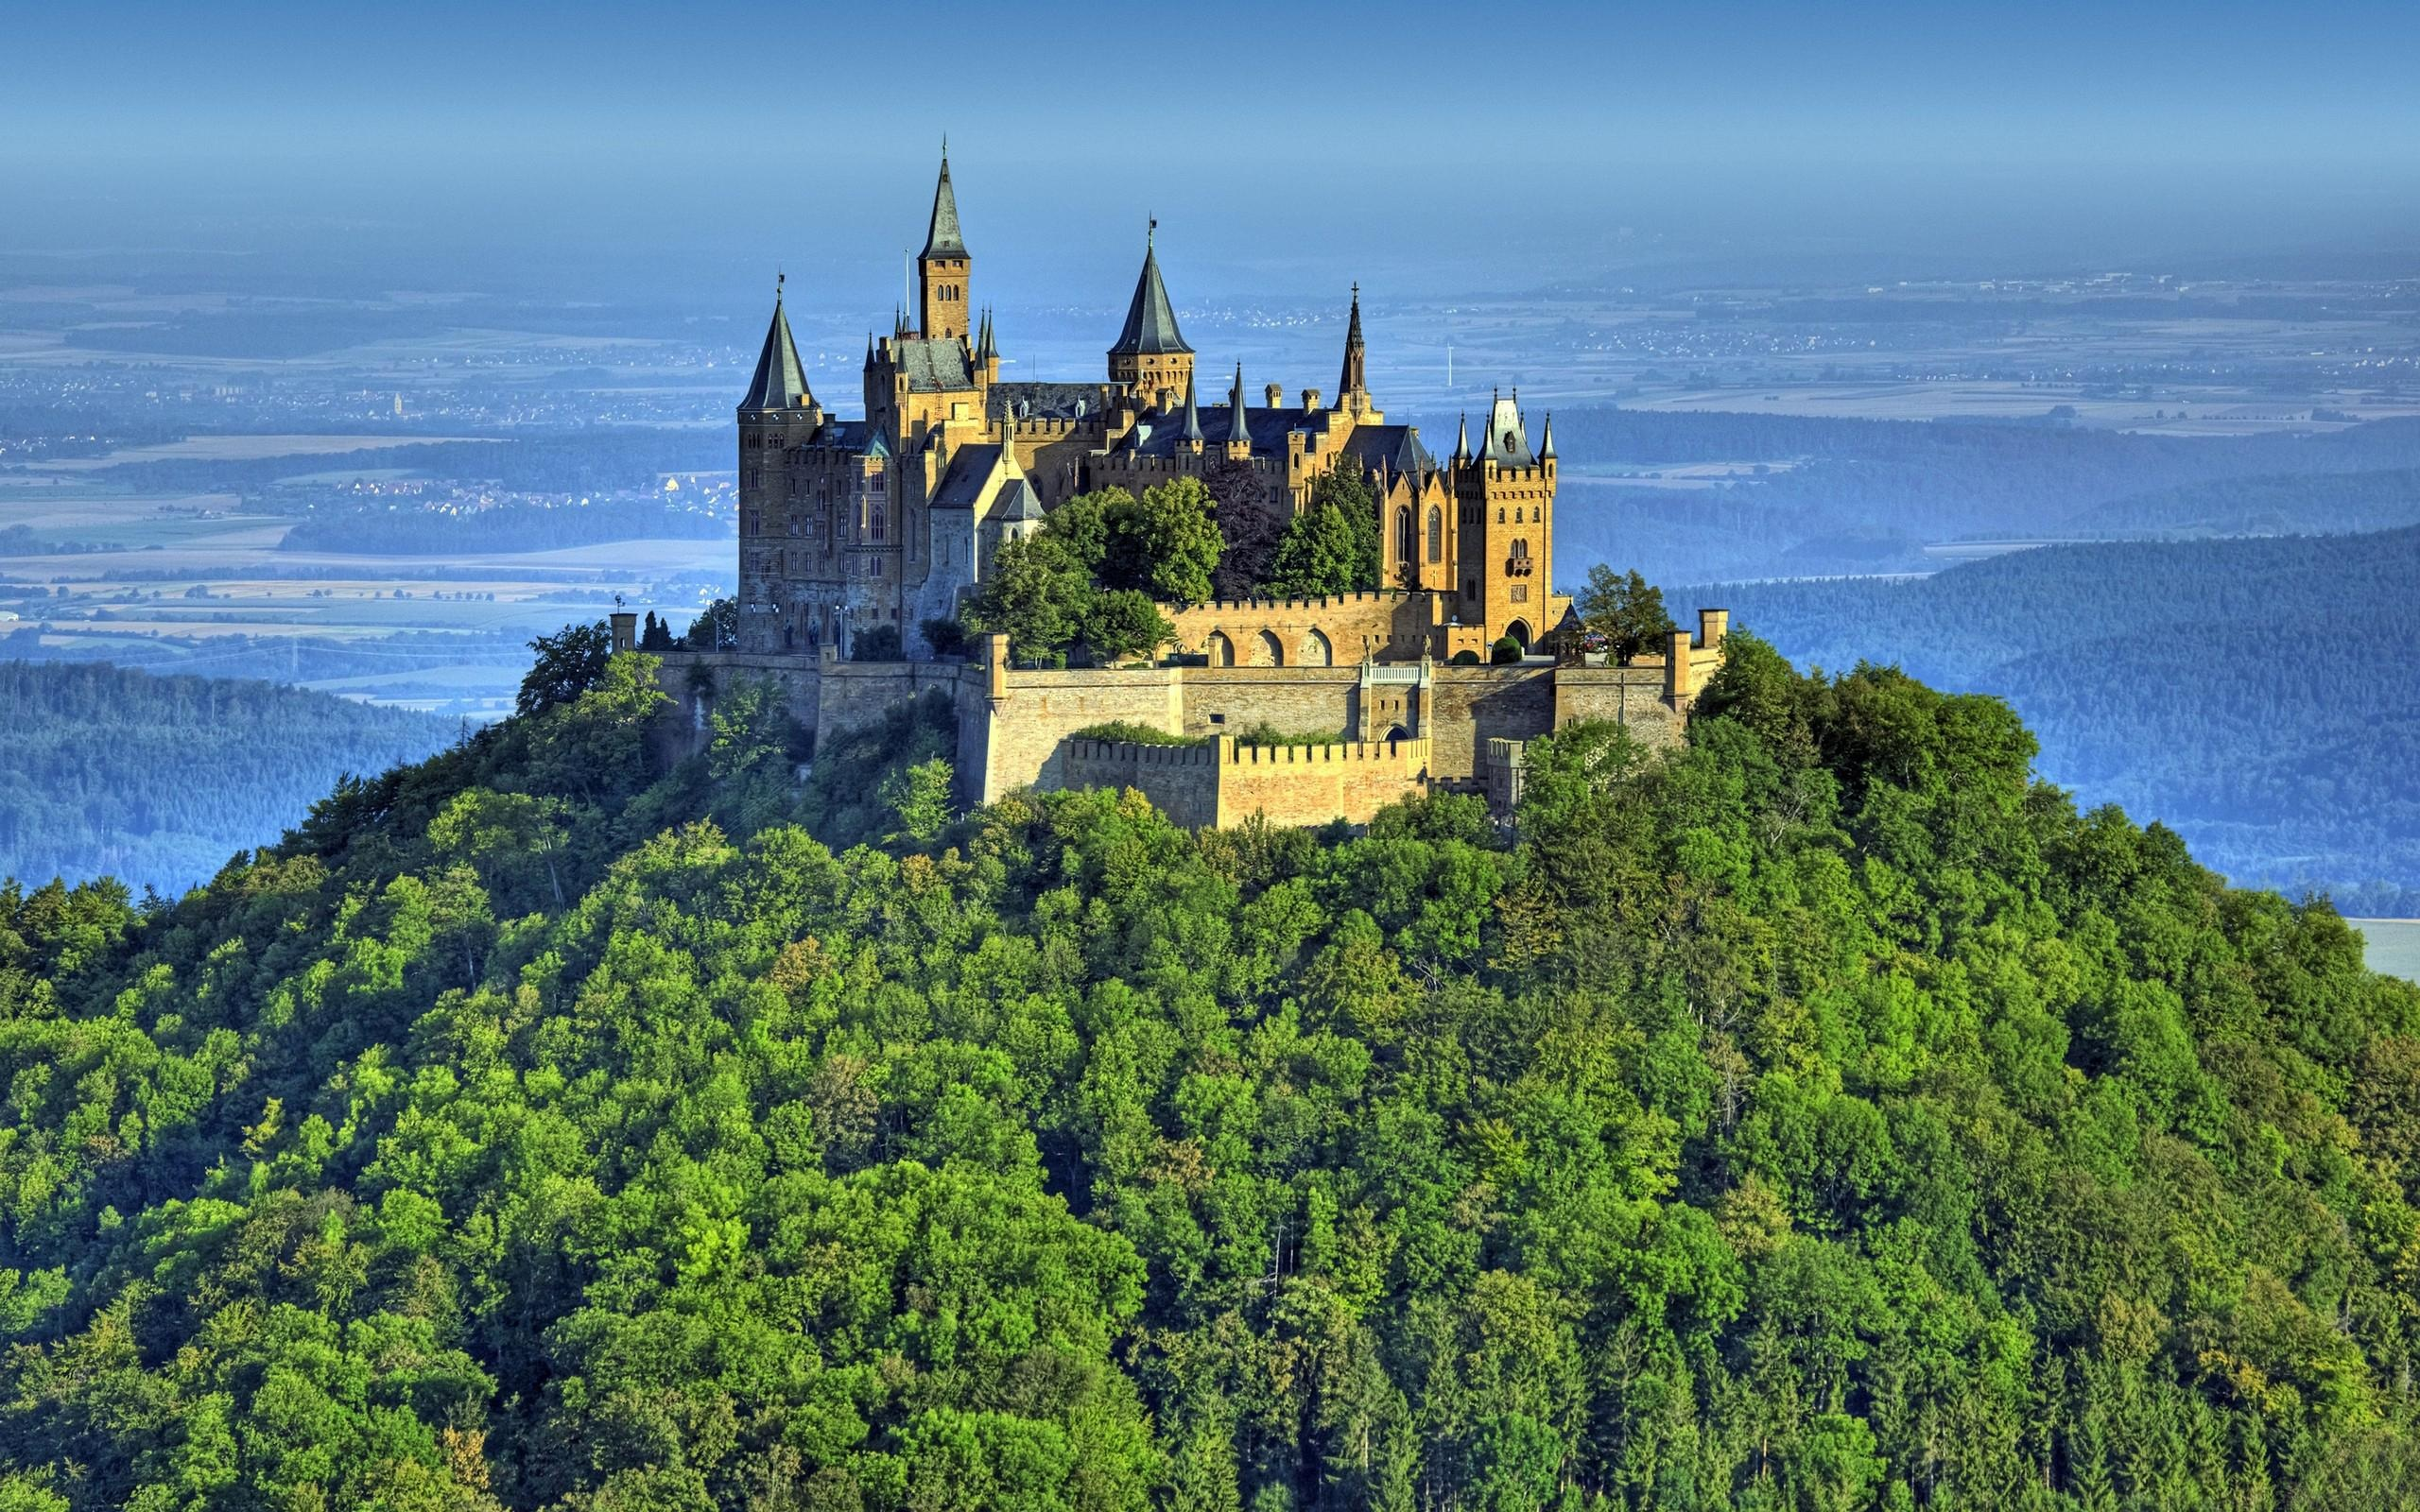 Hohenzollern Castle on the Hill in Germany 120.06 Kb